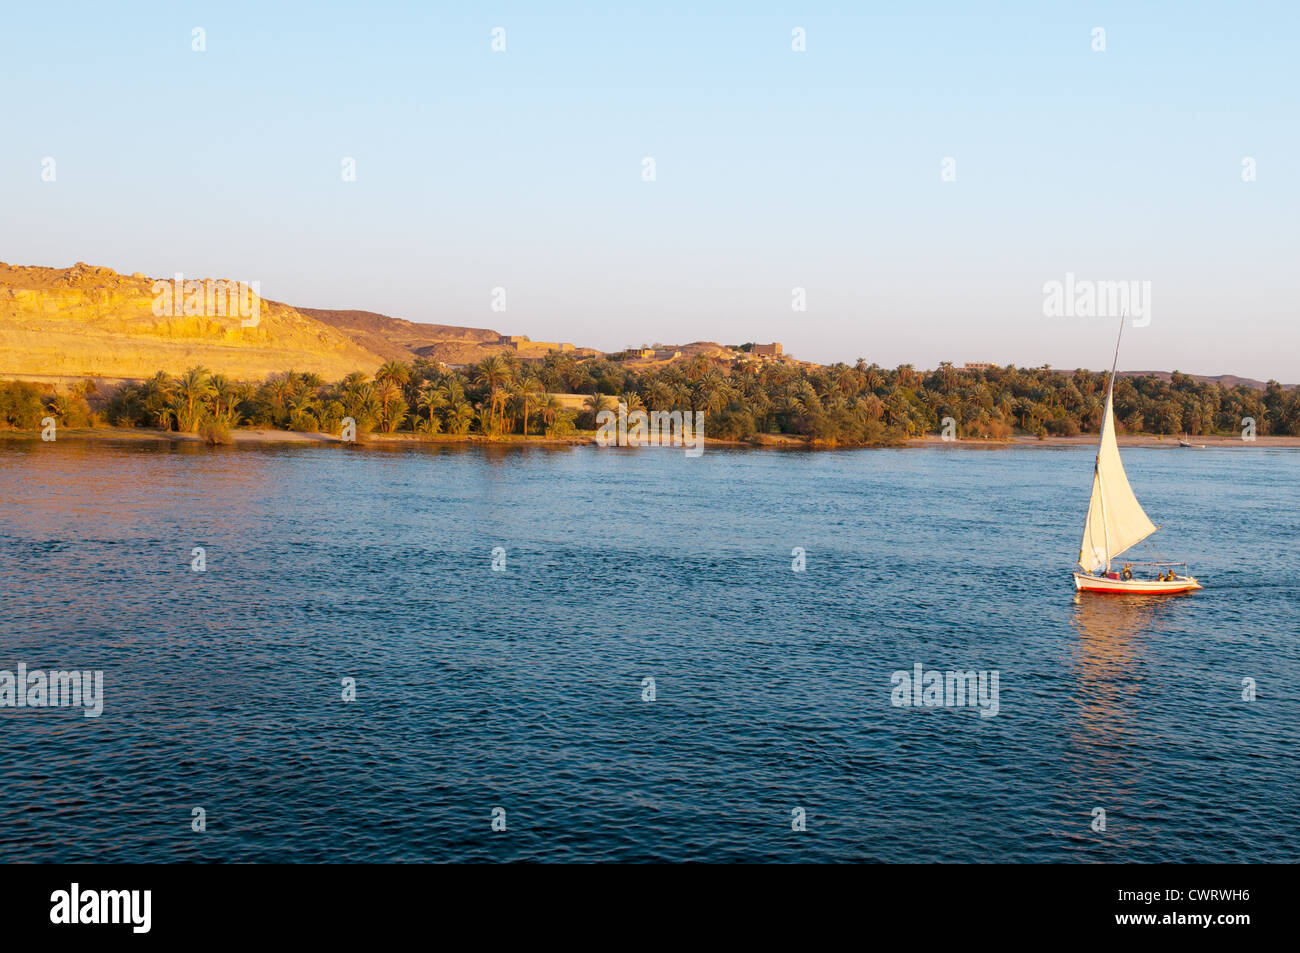 Upper Egypt, Nile river countryside between Luxor and Aswan - Stock Image